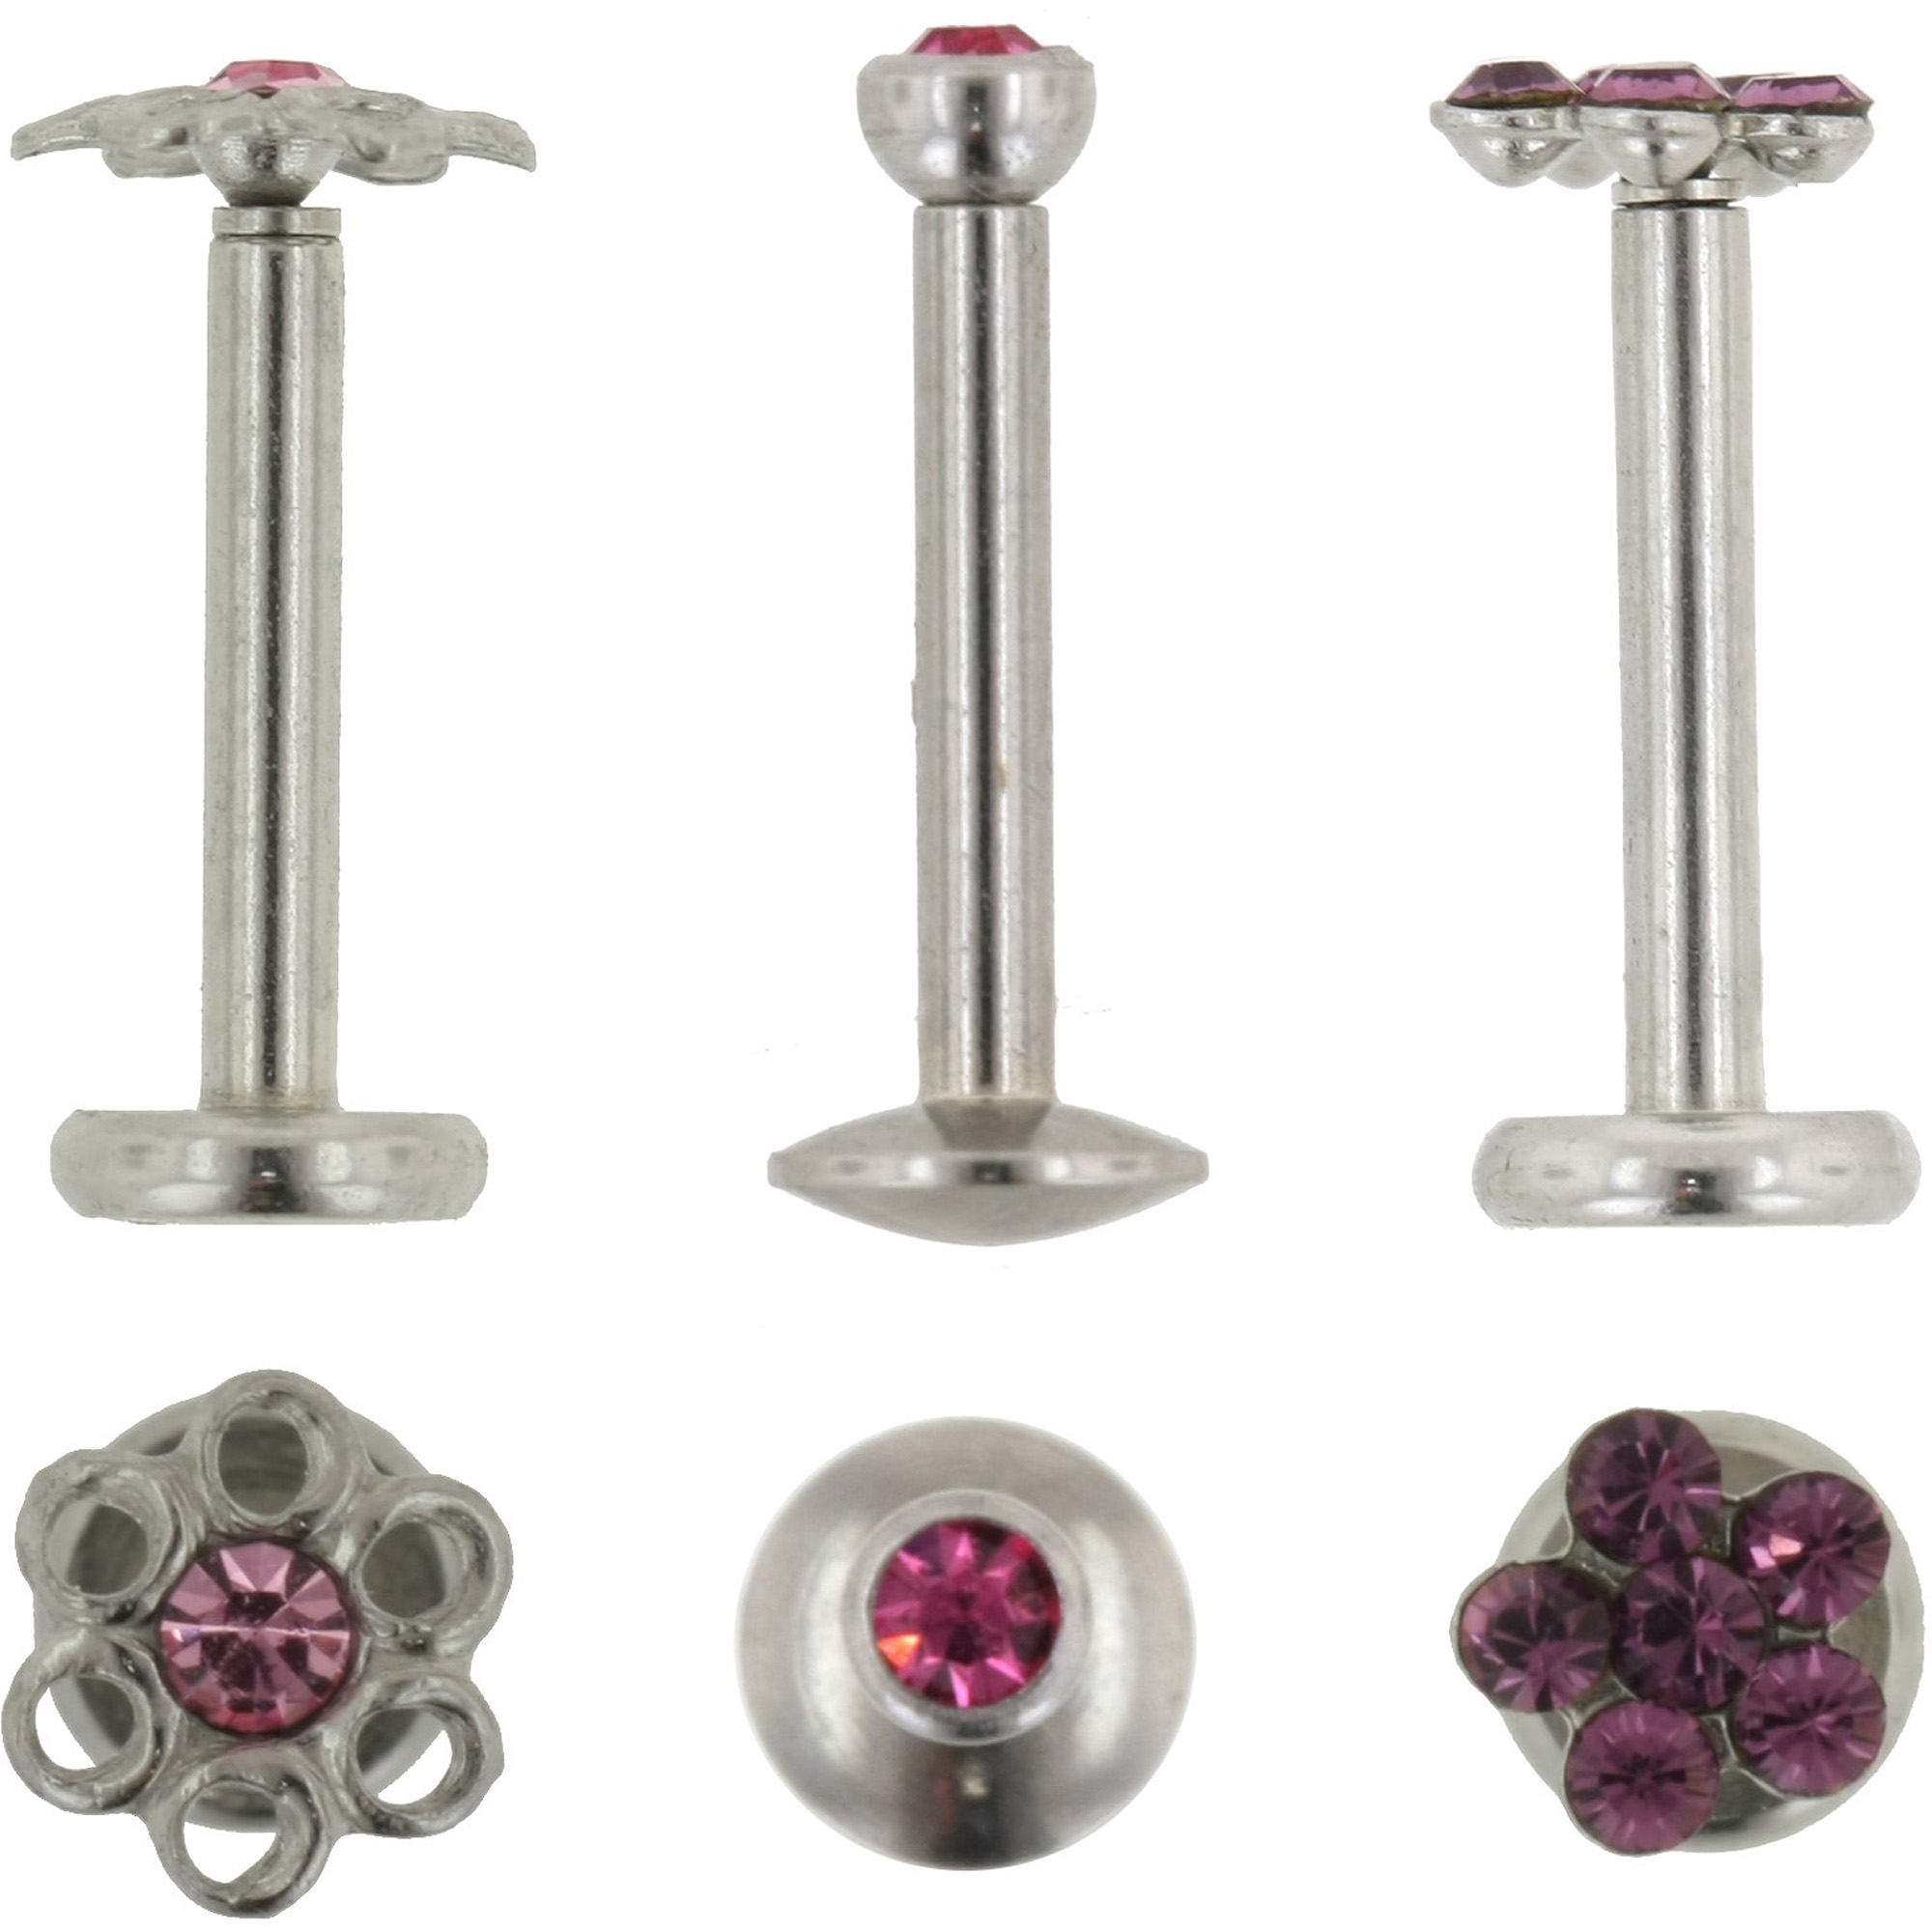 Hotsilver Body Jewelry 3 Pack - 16G Surgical Steel Internally Threaded Crystal Labret Monroe -Pink